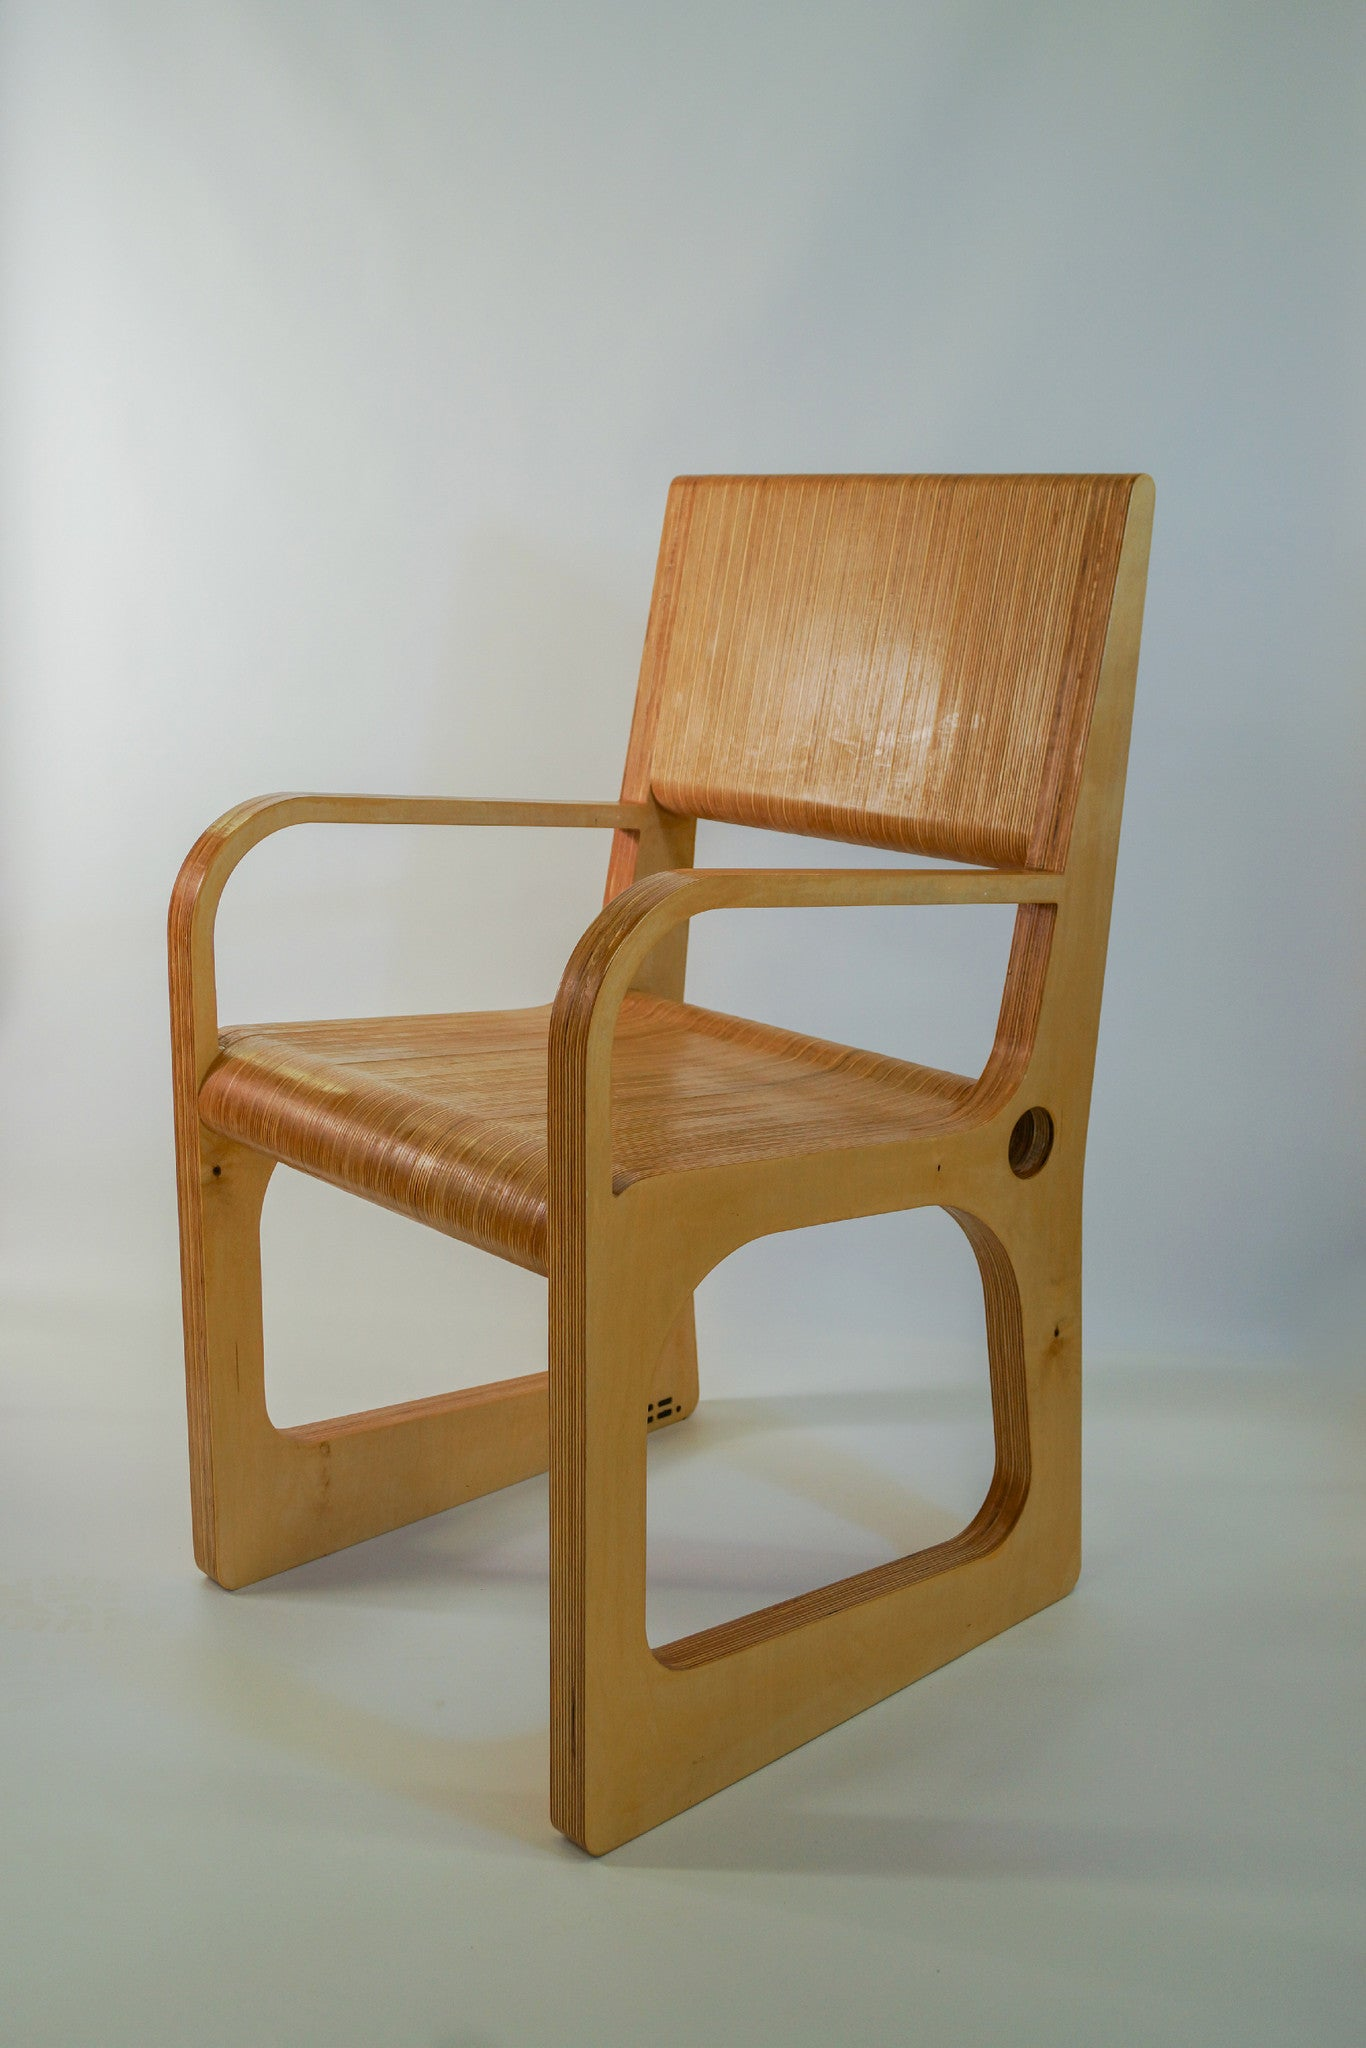 Nelson Chair - Good and Original Furniture